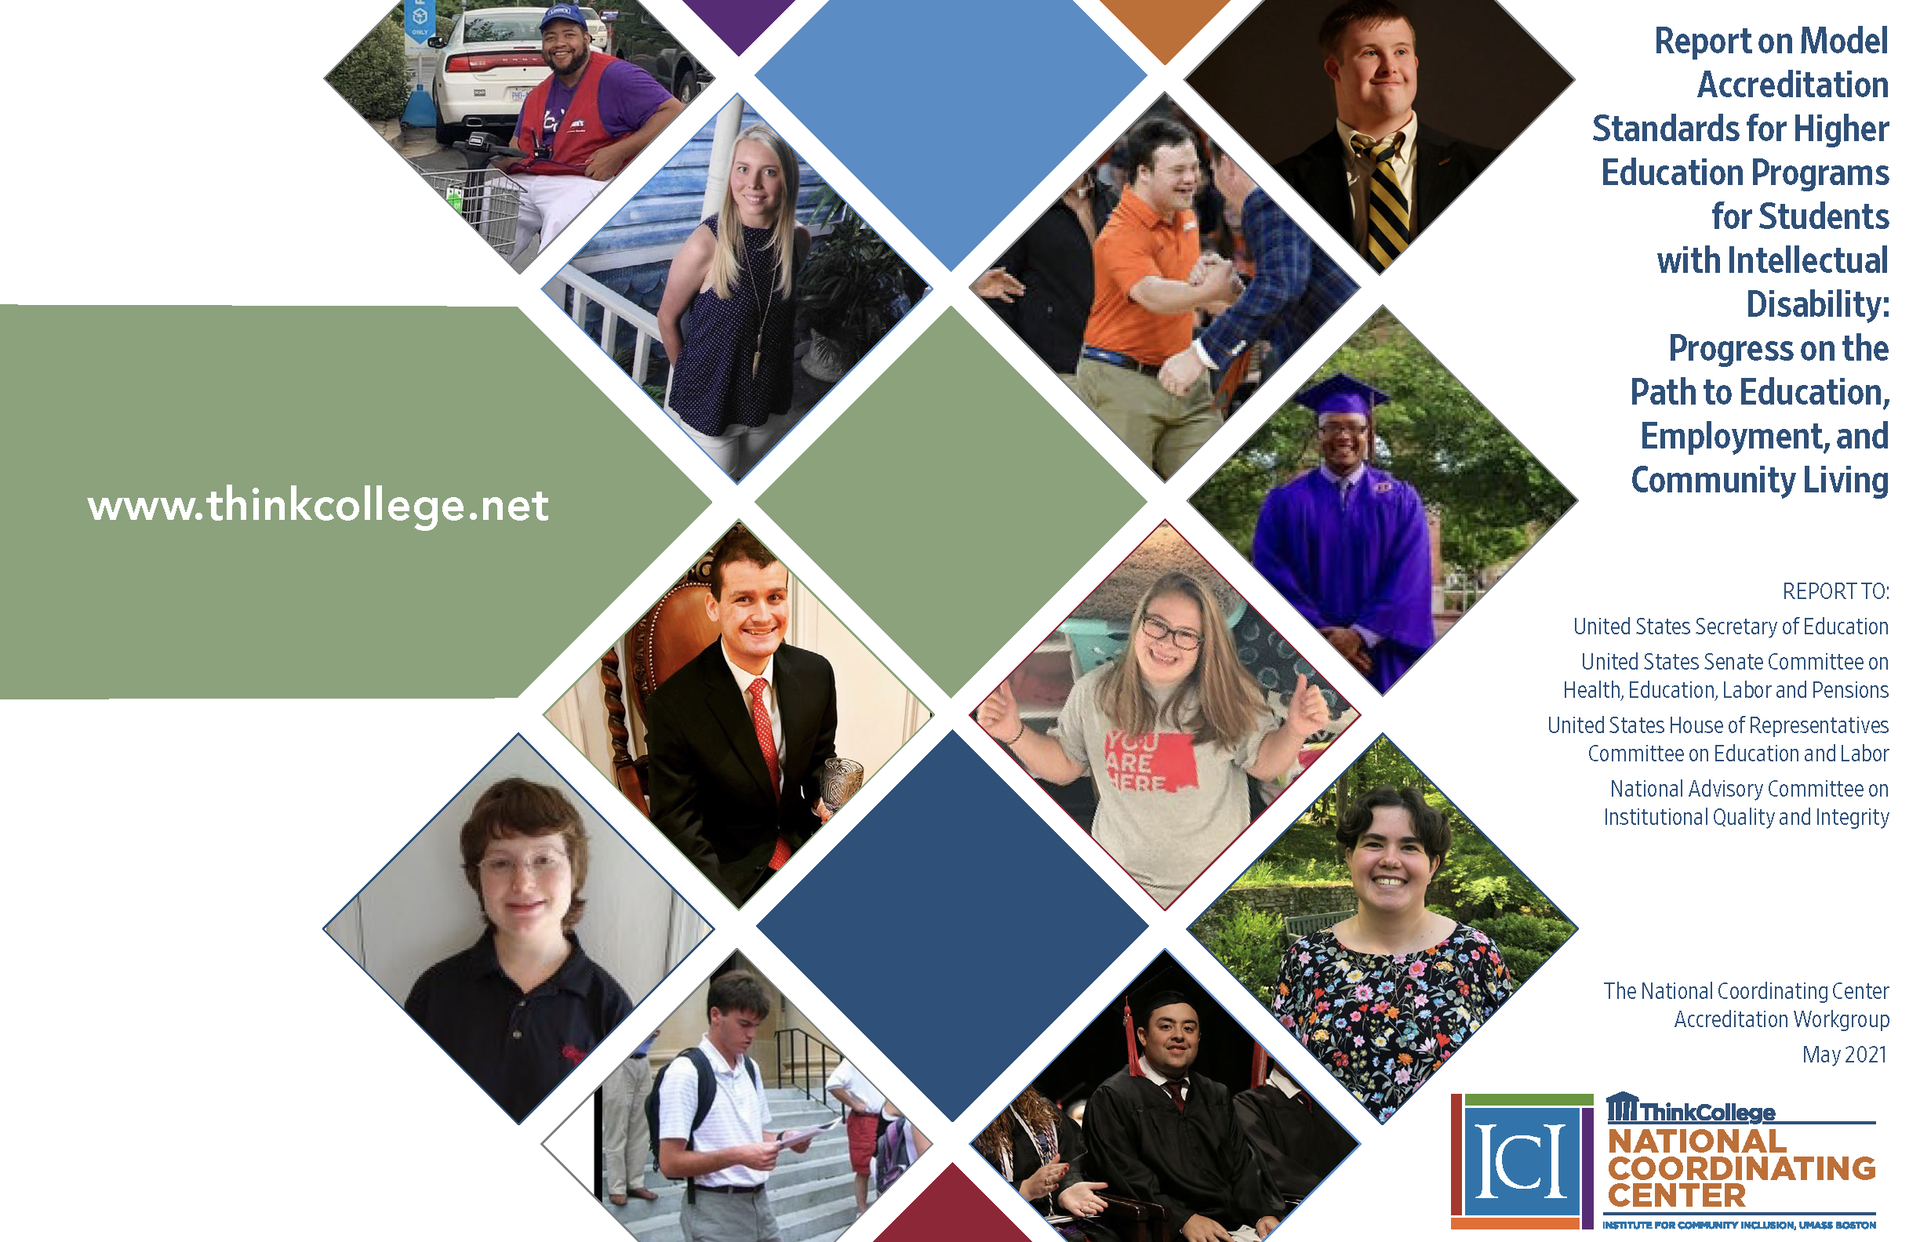 Accreditation Workgroup Report on Model Accreditation Standards for Higher Education Programs for Students with Intellectual Disability: Progress on the Path to Education, Employment, and Community Living.